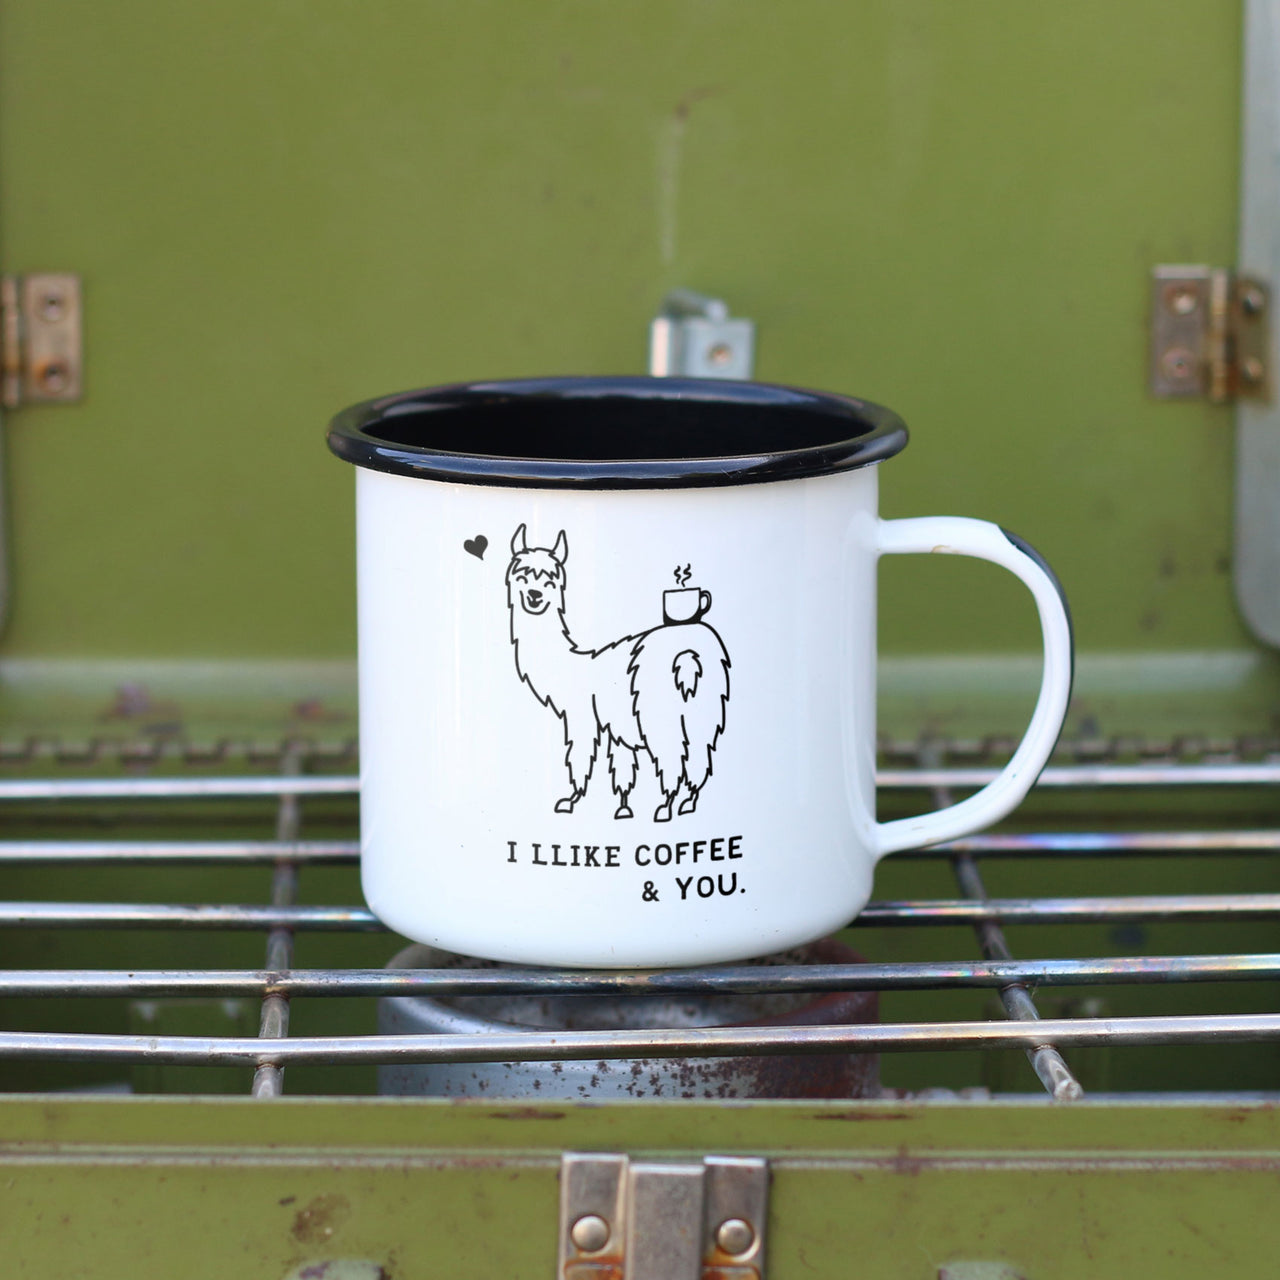 I Llike Coffee and You - Llama Mug - Llama Pun Camp Mug